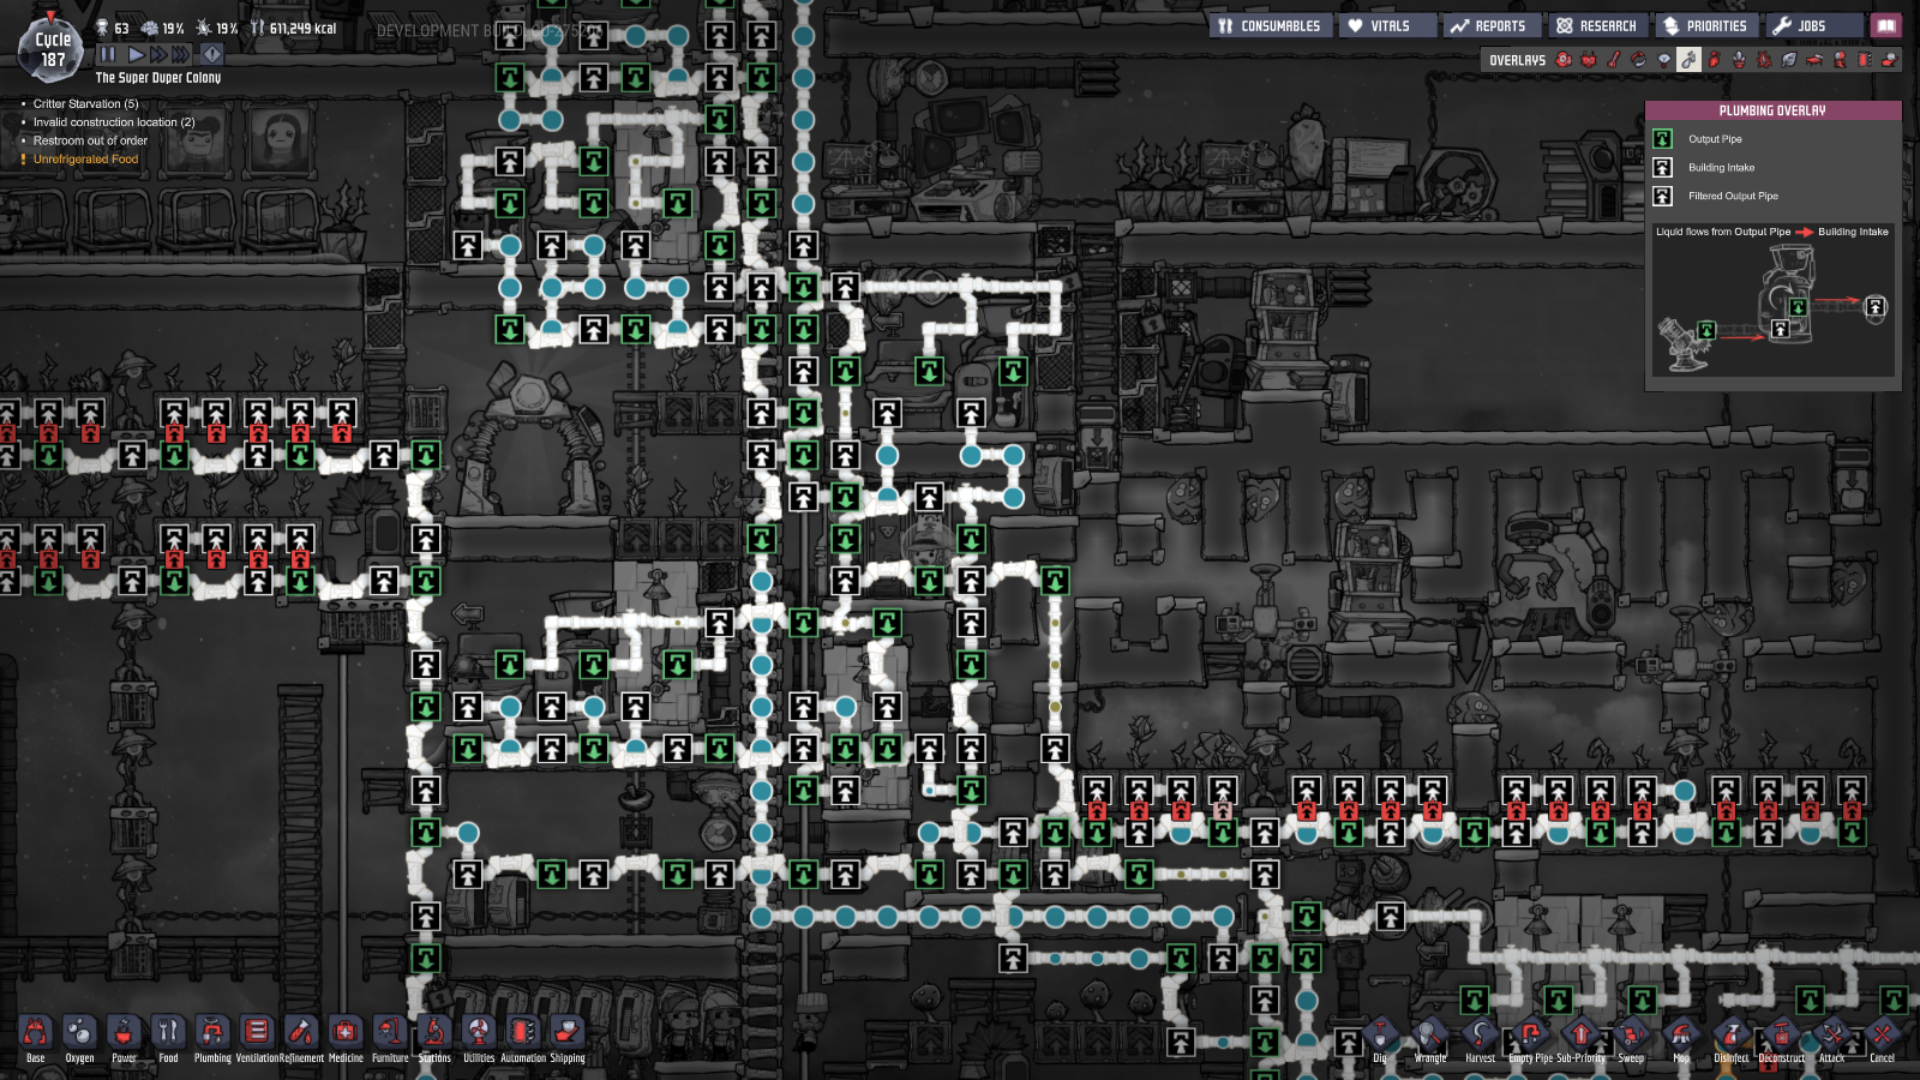 The usefulness of a maintanance belt - [Oxygen Not Included